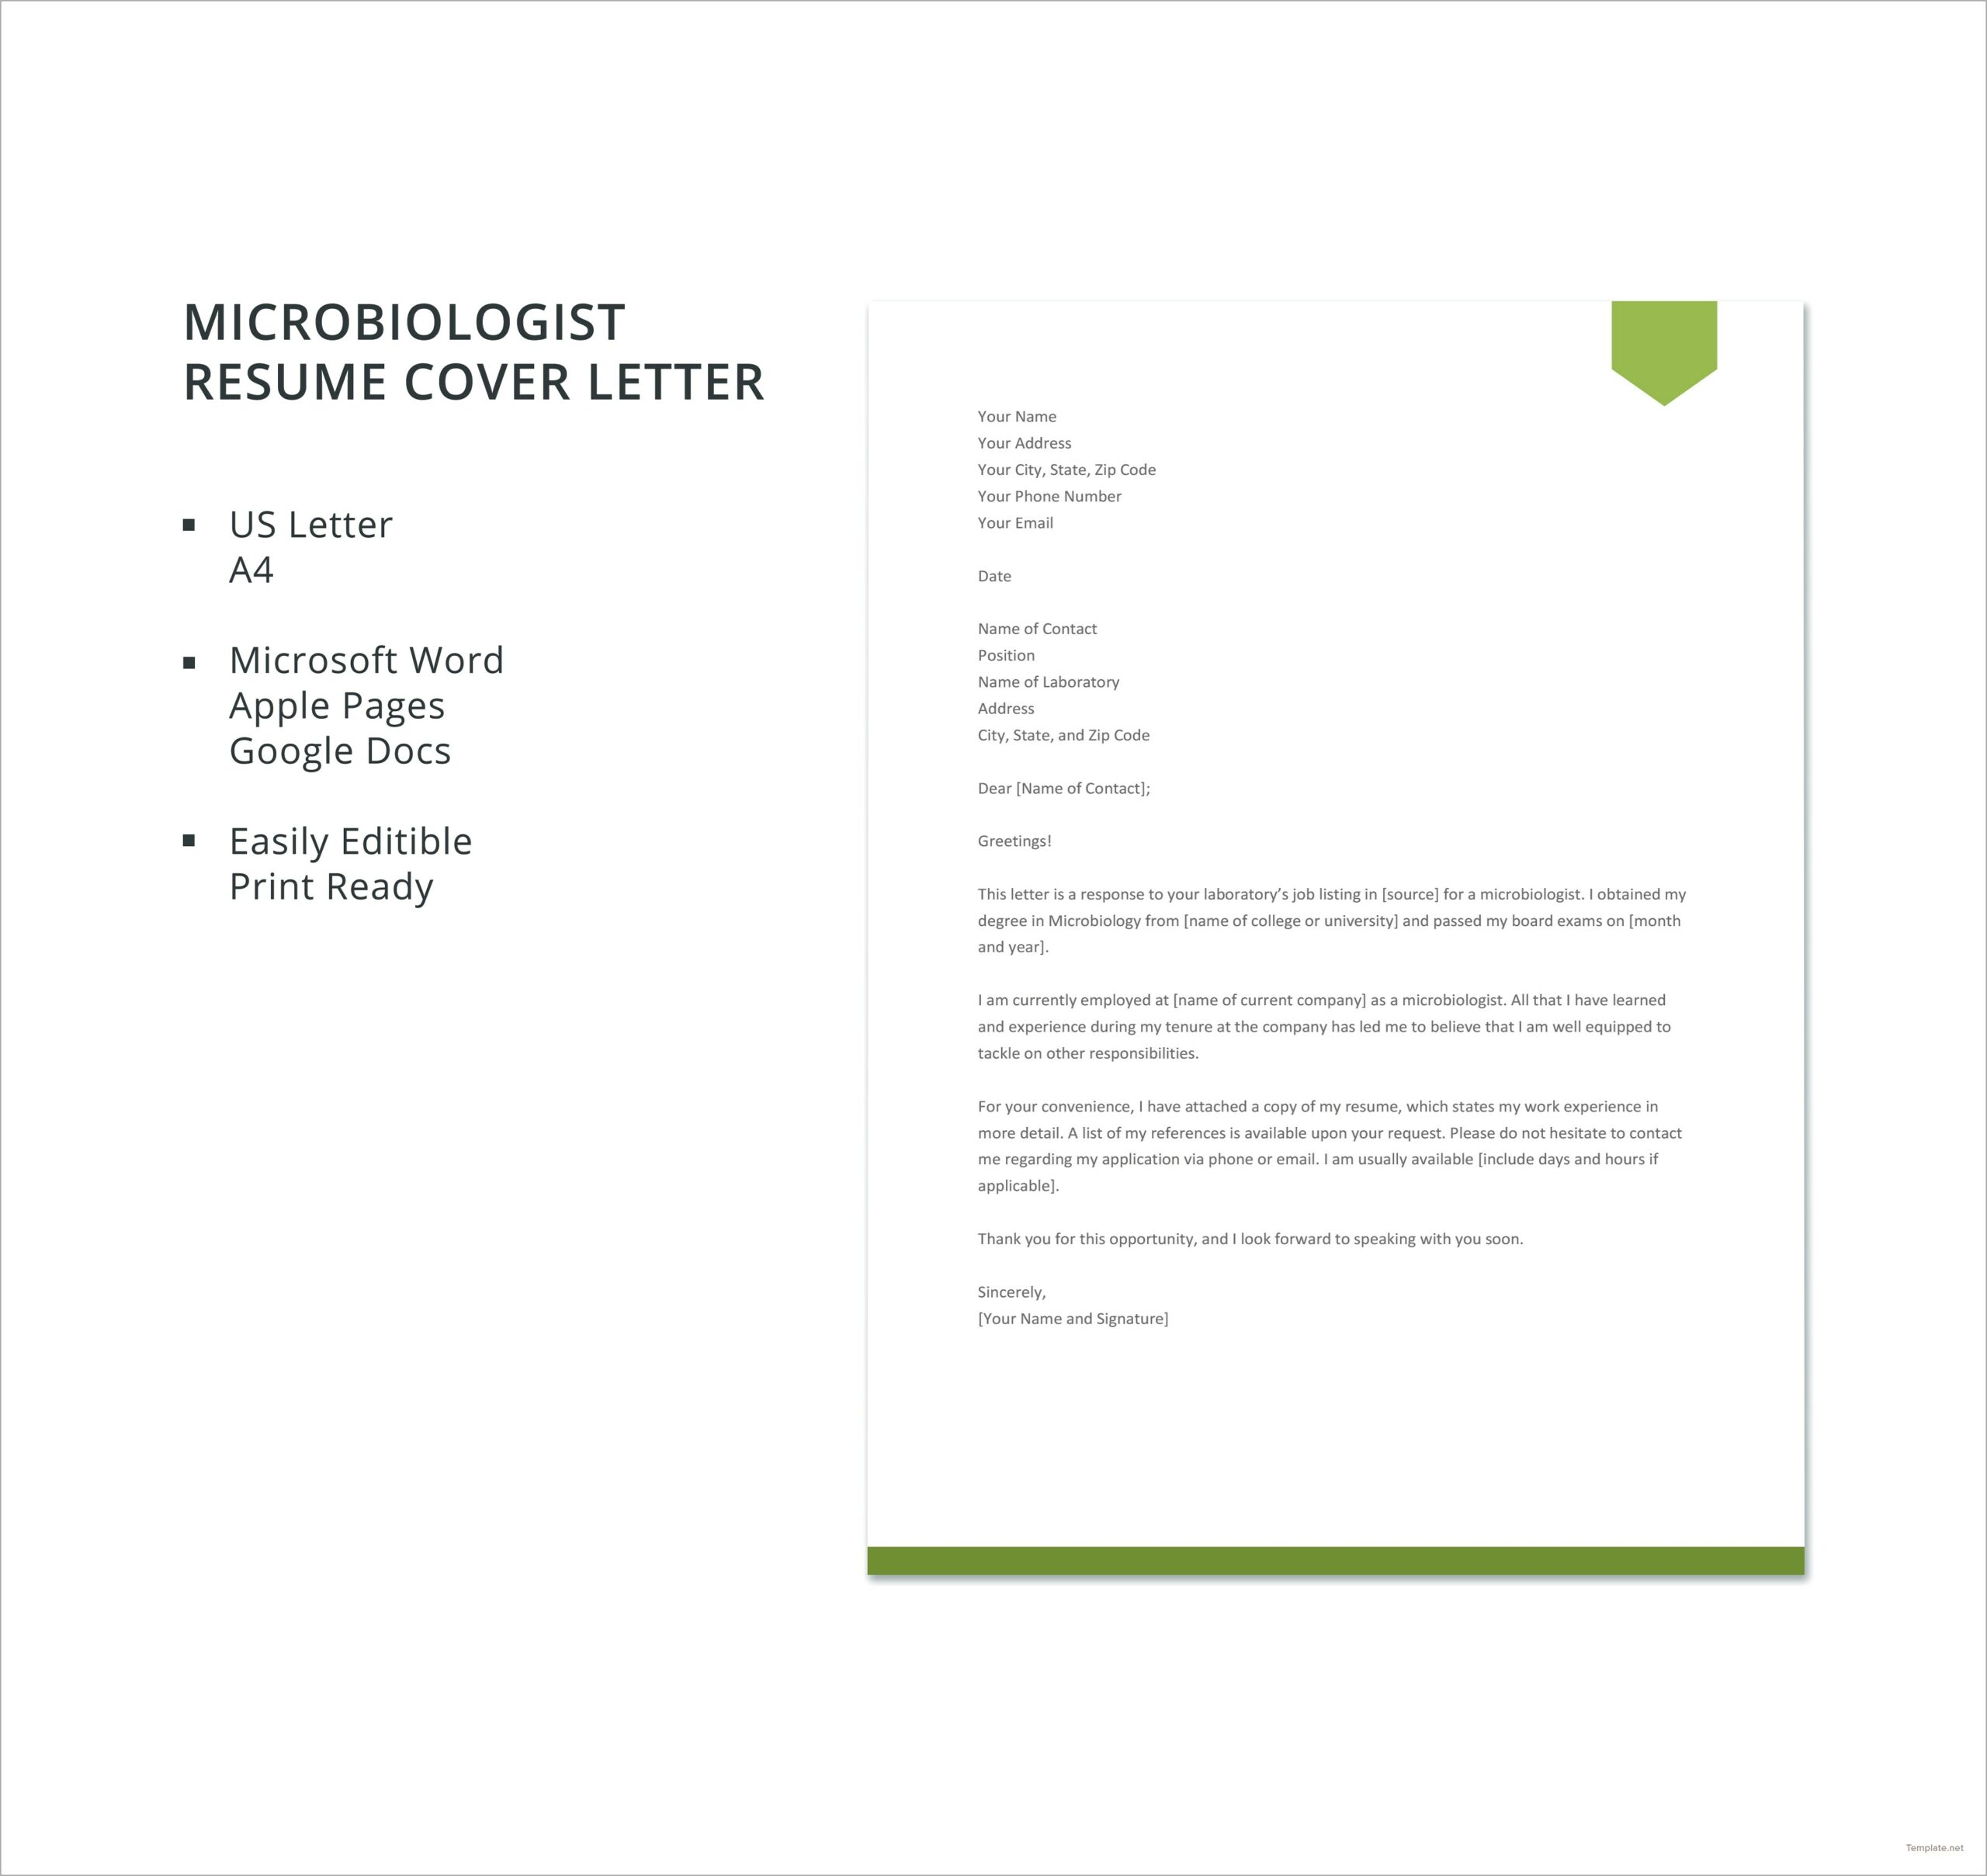 Free General Resume Cover Letter Template